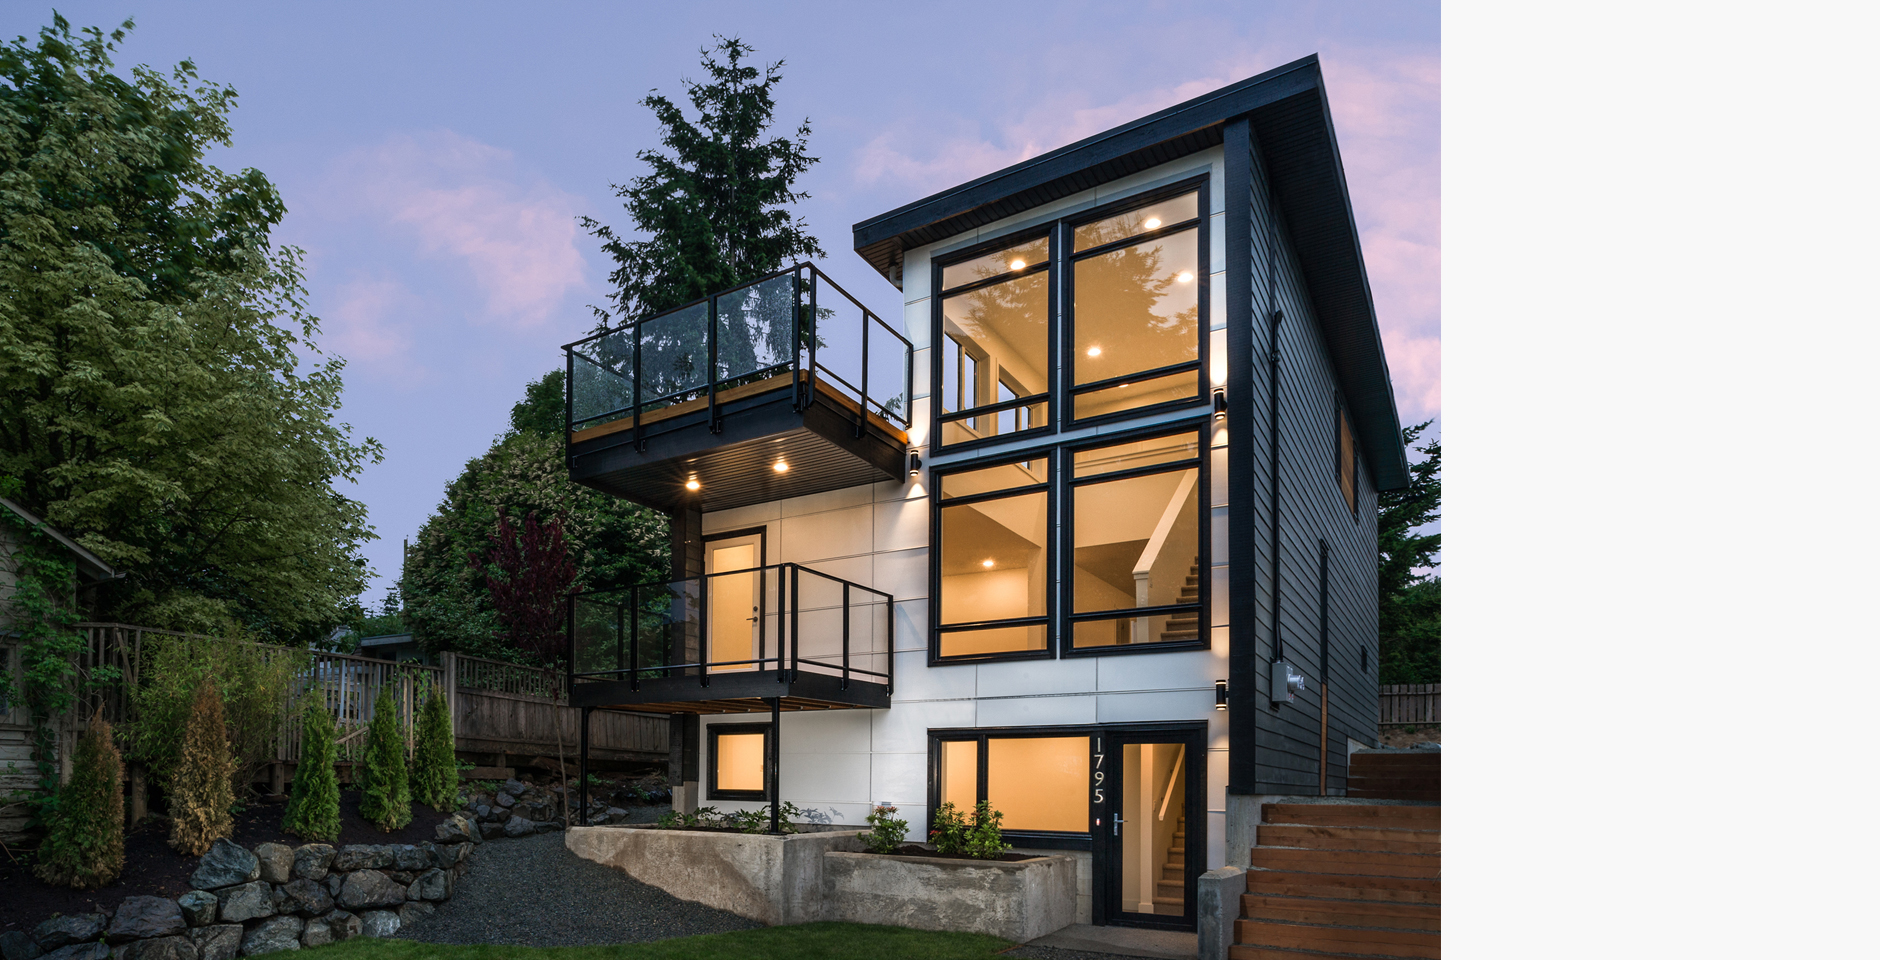 Sandrin leung architecture nanaimo spec house complete for Spec home